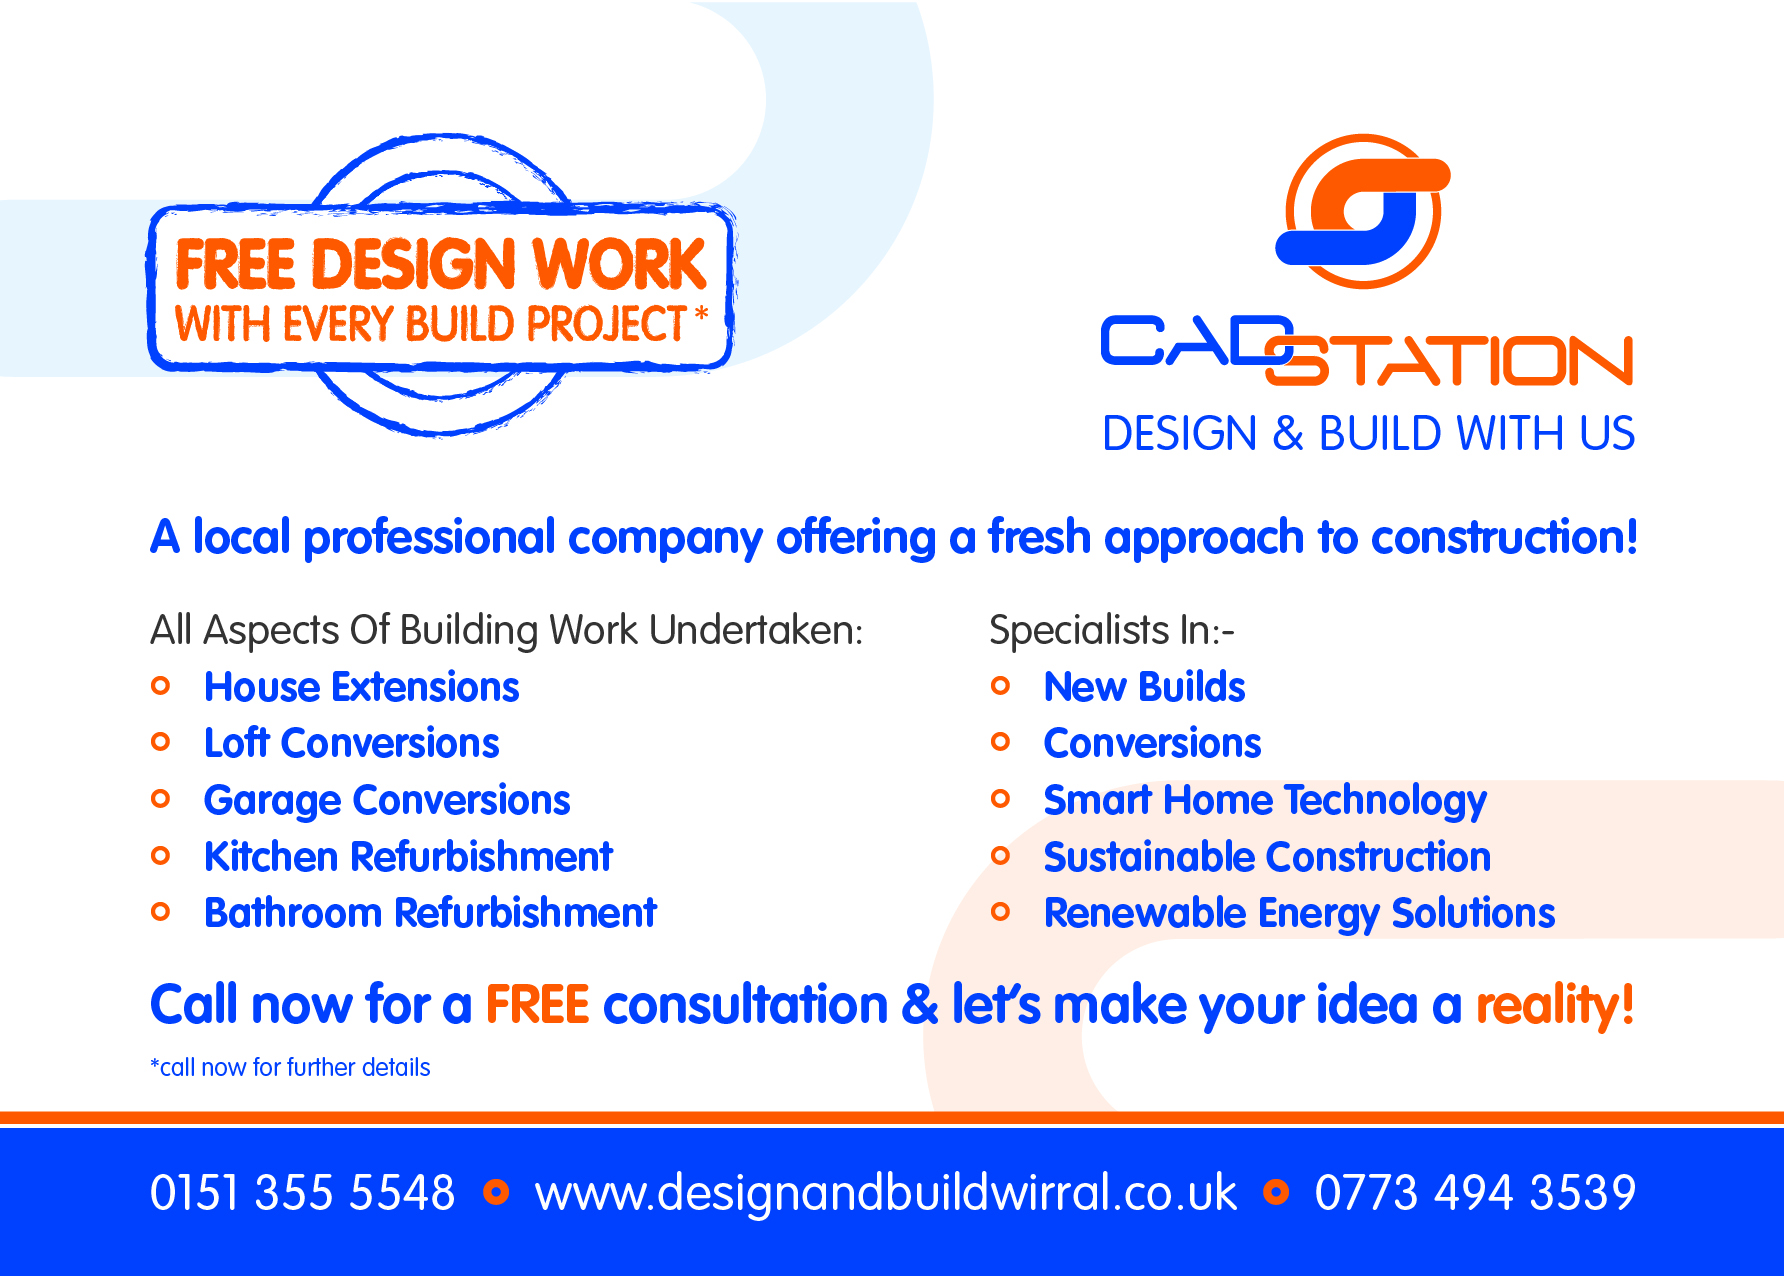 Cadstation Ltd – Design and Build Wirral